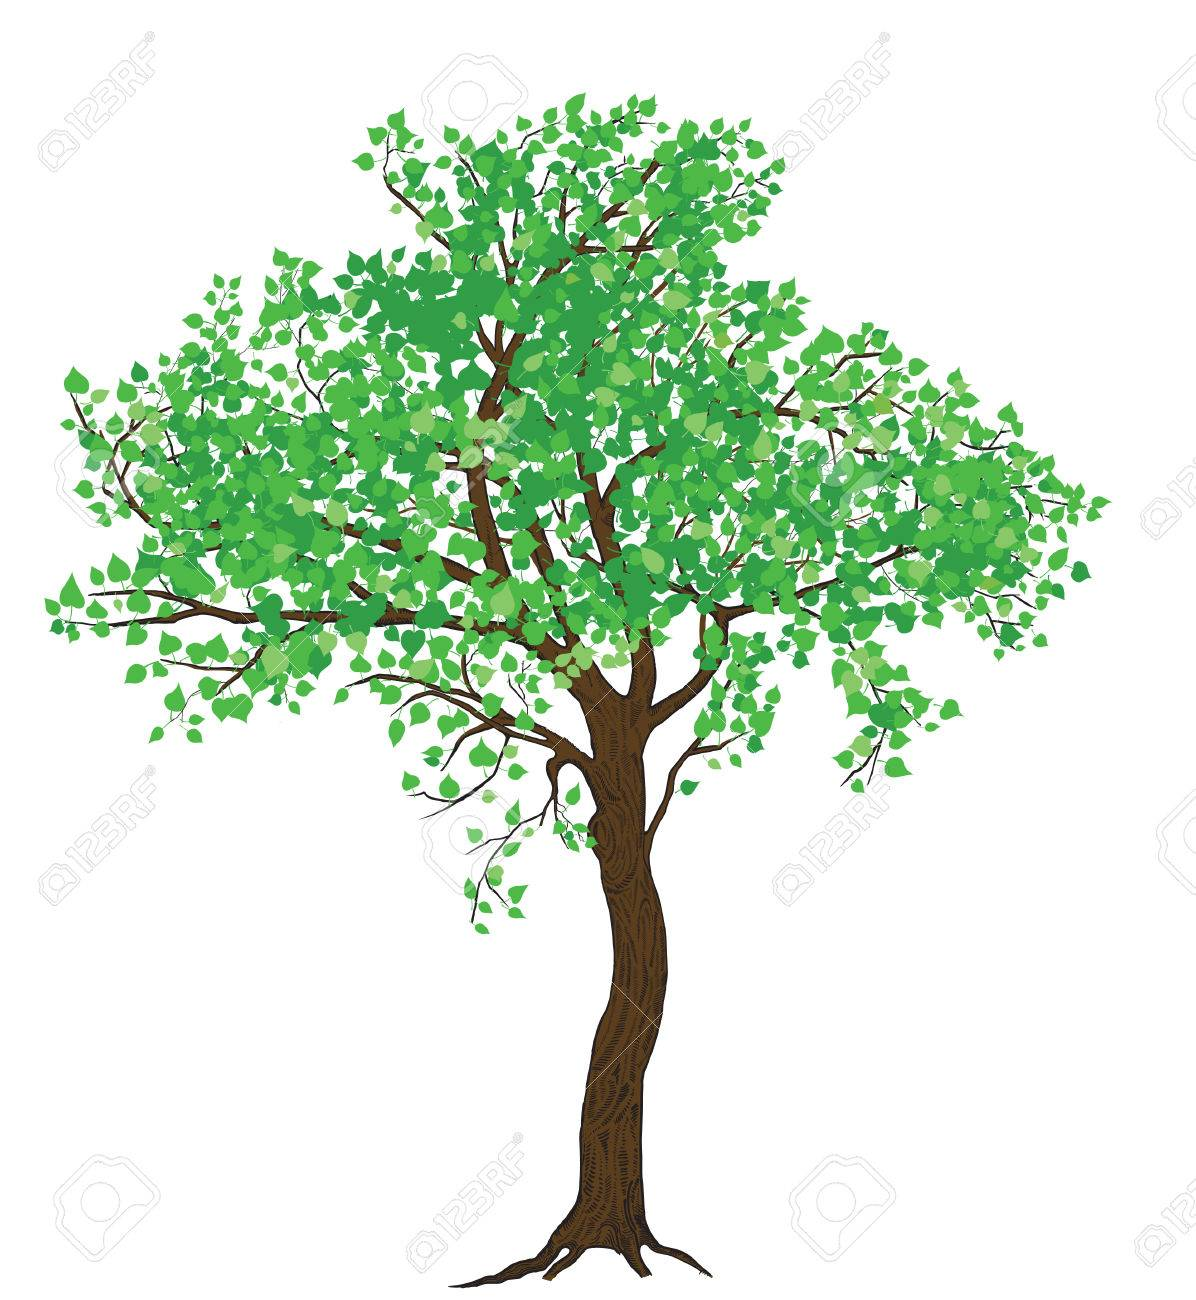 Large Tree Drawing at GetDrawings.com | Free for personal use Large ...